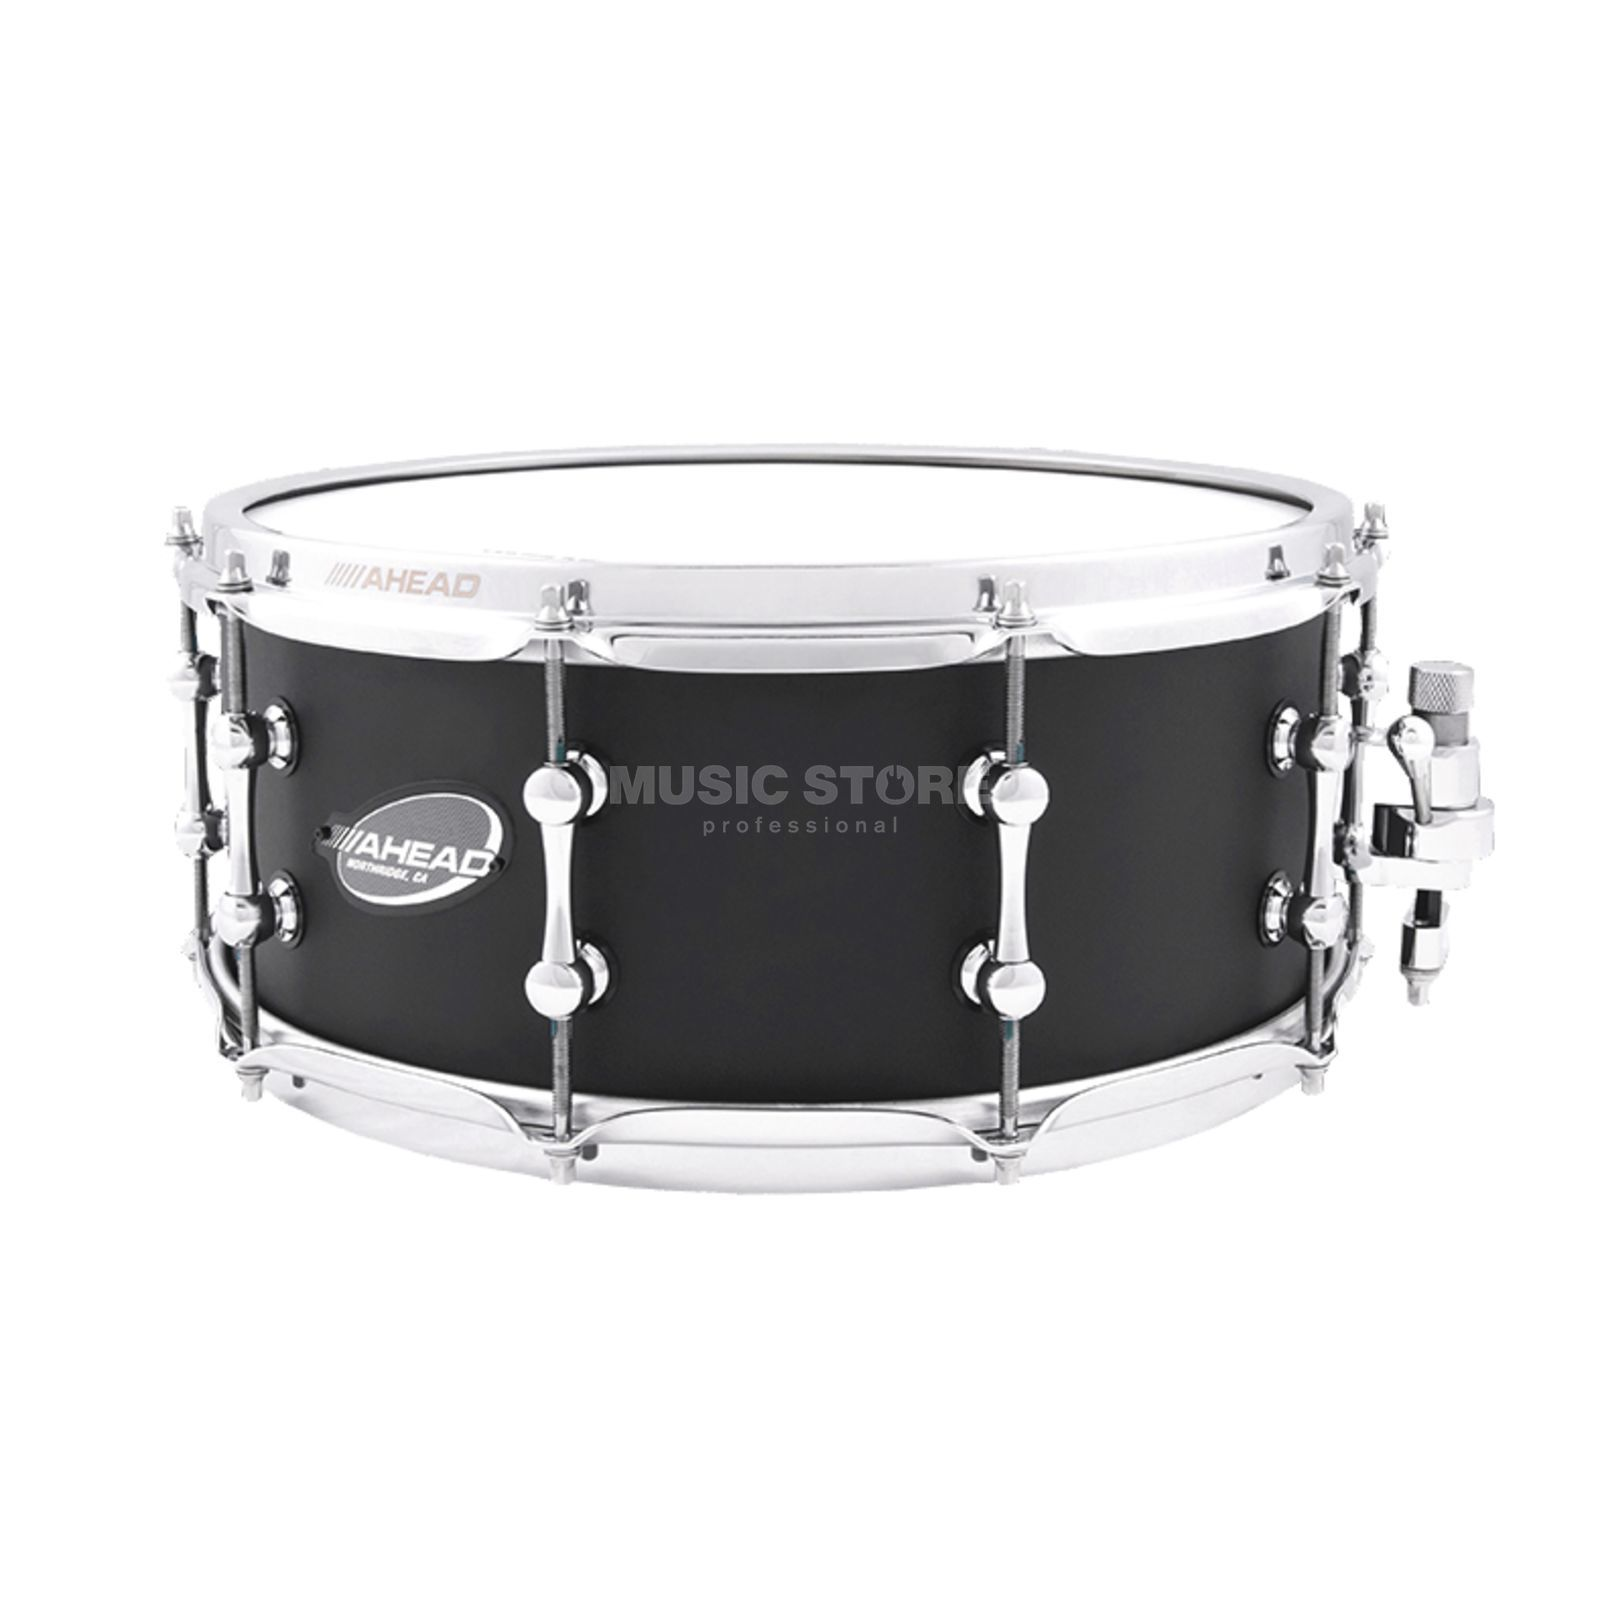 "Ahead Sticks AS614FB Snare 14""x6"", Flat Black on Brass, B-Stock Produktbillede"